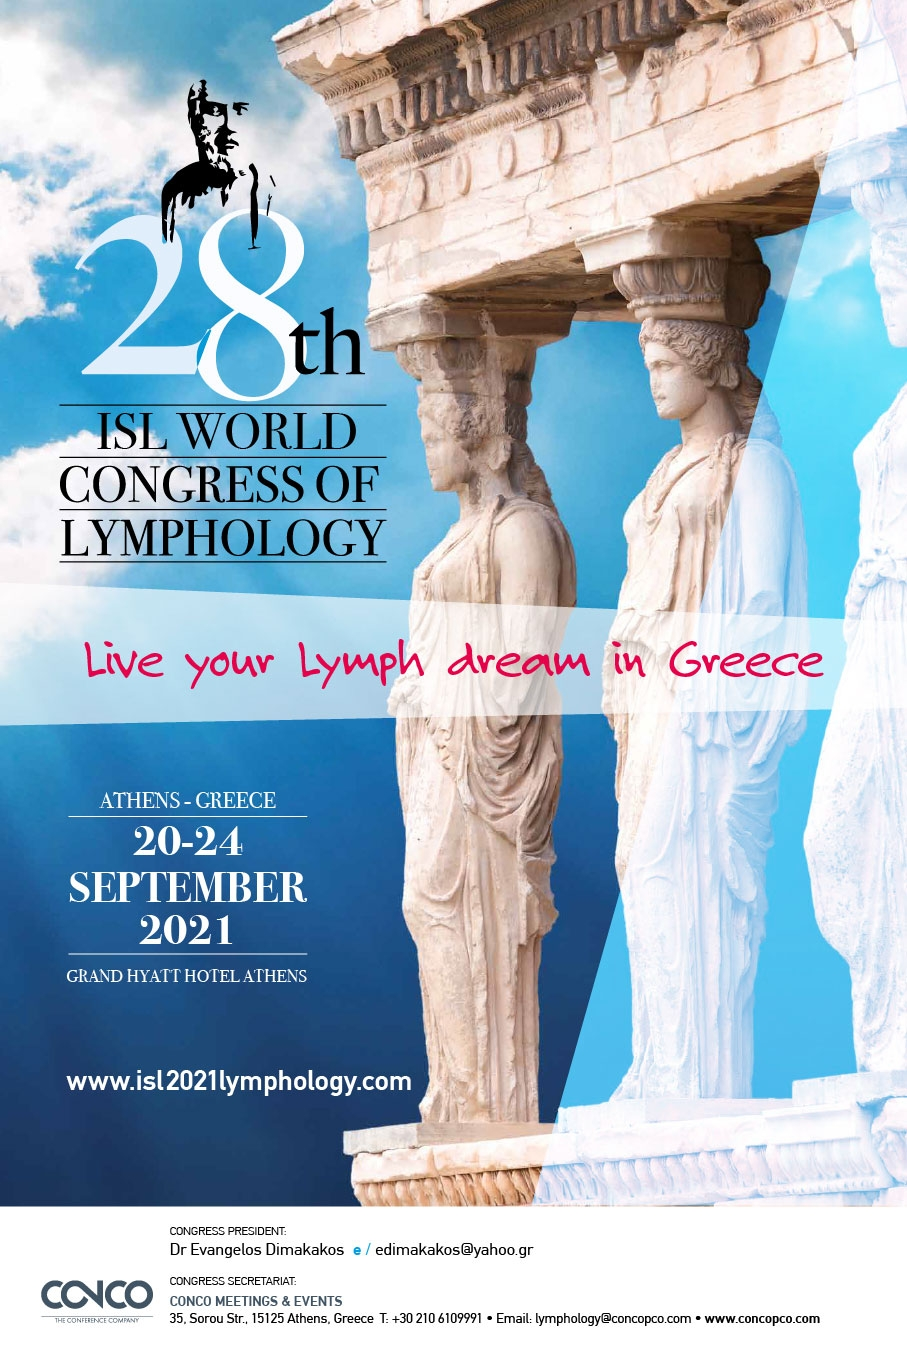 28 WorldCongress Lymphology Poster